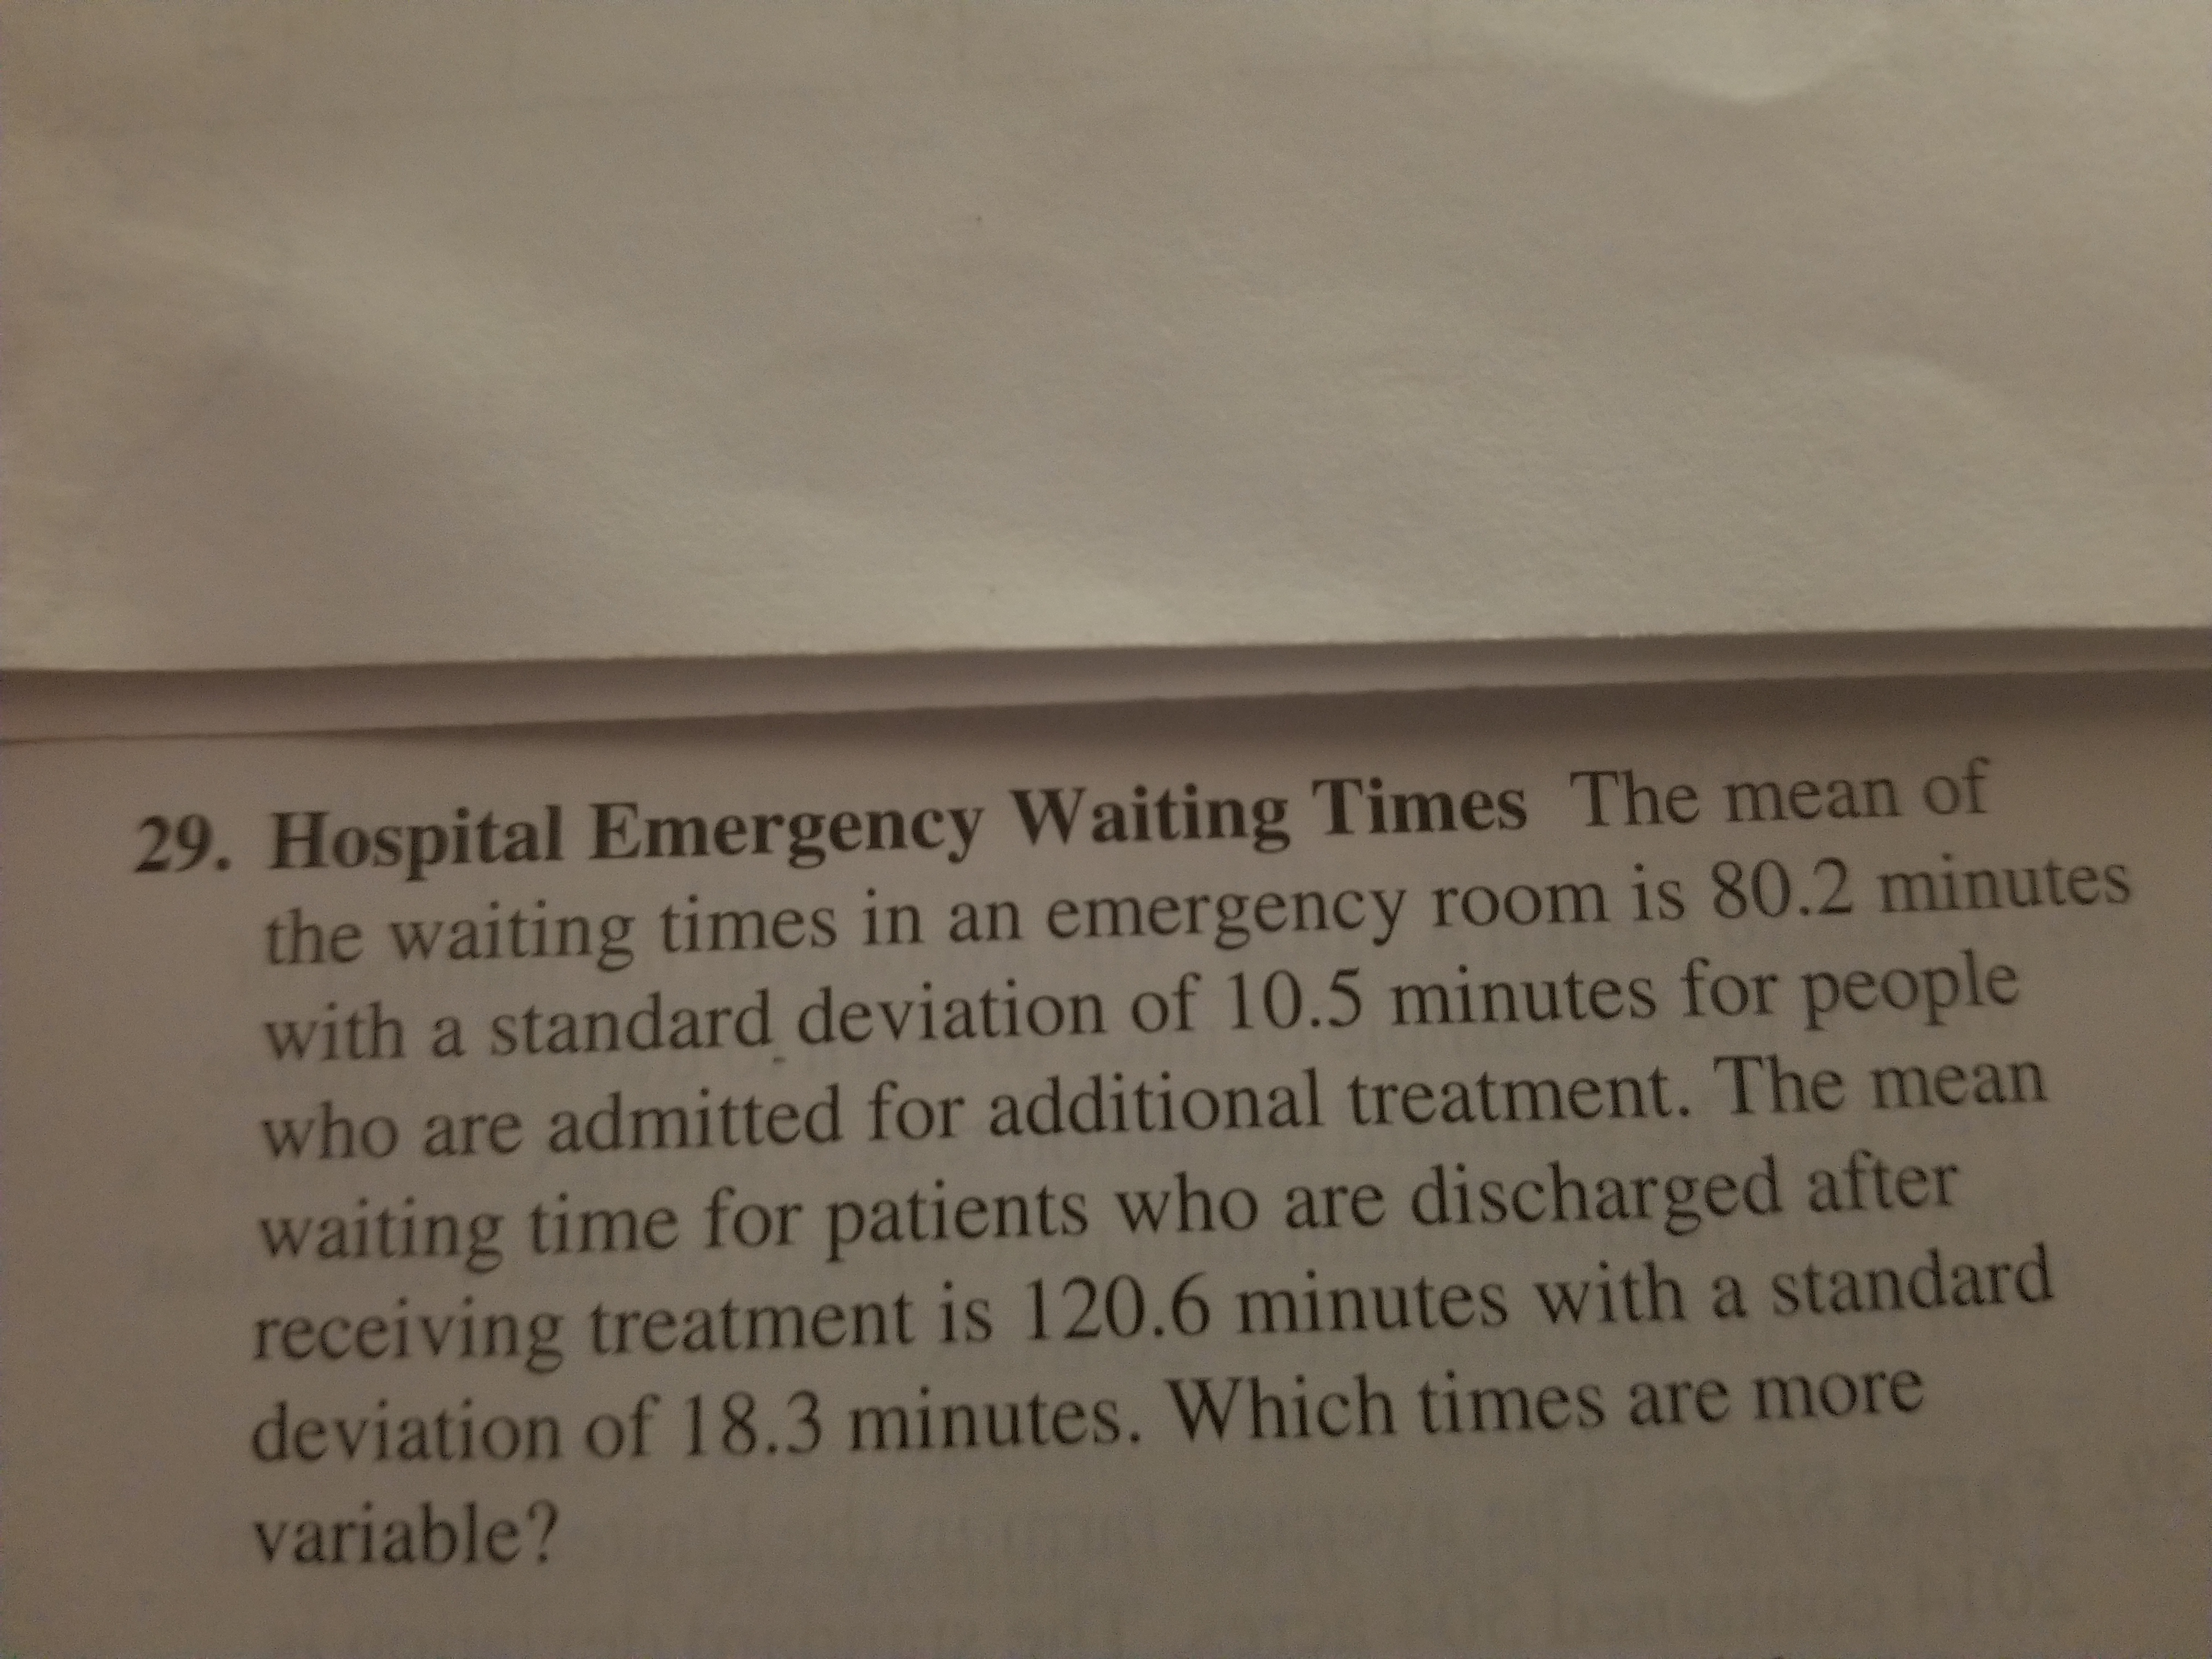 29. Hospital Emergency Waiting Times The mean of the waiting times in an emergency room is 80.2 minutes with a standard deviation of 10.5 minutes for people who are admitted for additional treatment. The mean waiting time for patients who are discharged after receiving treatment is 120.6 minutes with a standard deviation of 18.3 minutes. Which times are more variable?